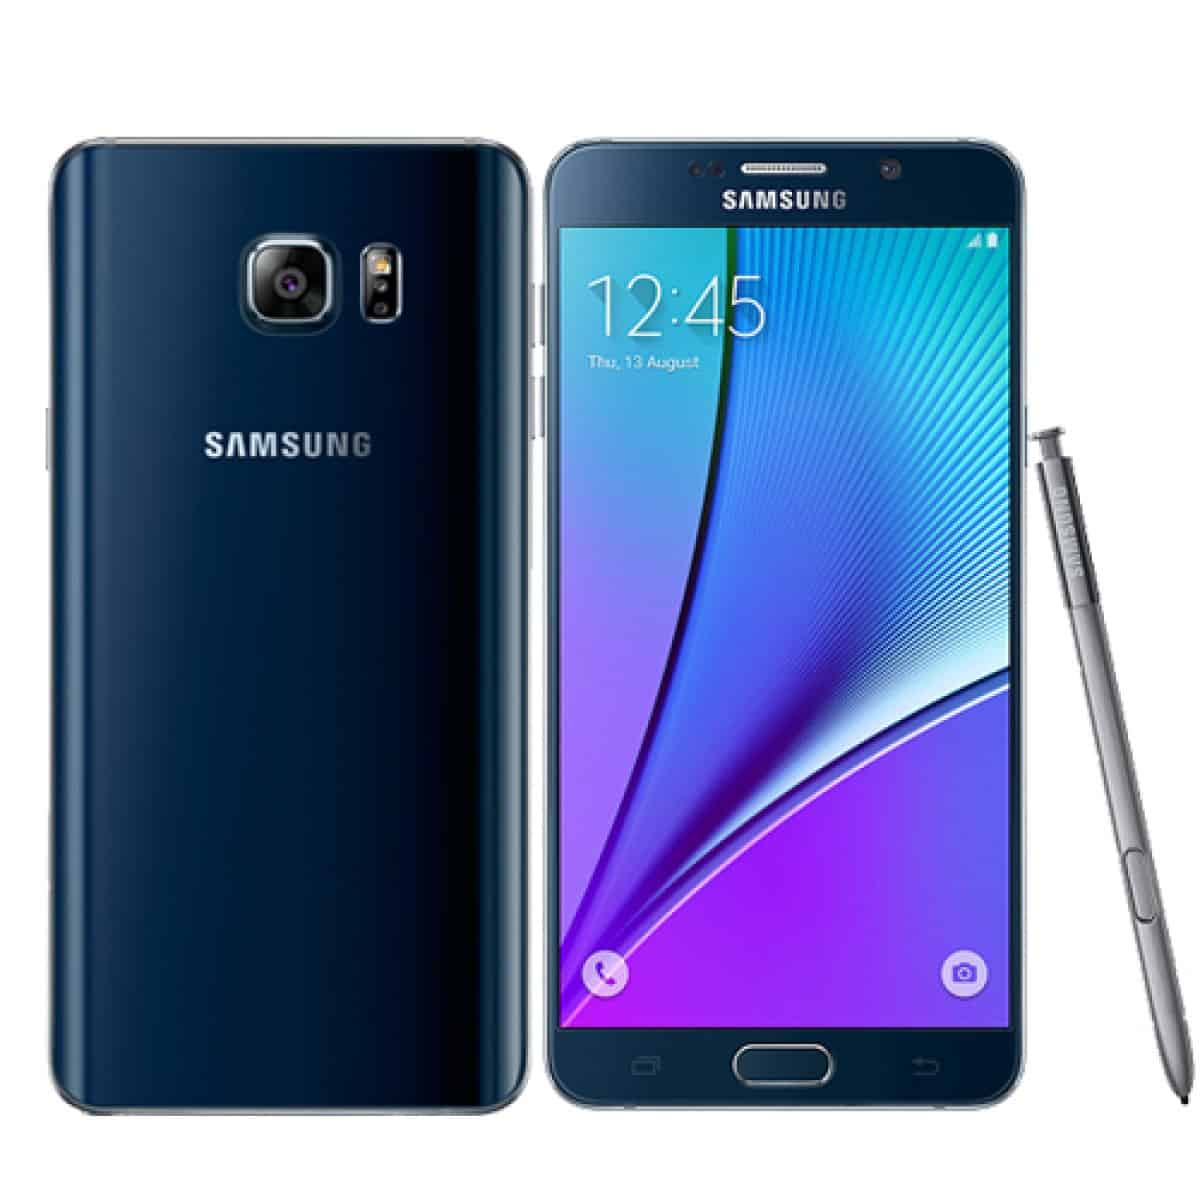 Samsung Galaxy S6 Edge 128GB together with Samsung Galaxy S7 First Look And Tour also Samsung Galaxy A5 Fiche Technique 25247 also Samsung Galaxy S7 Edge Noir 32 Go as well 3d Stitch Lilo Phone Case For Iphone And Samsung Phones. on blue galaxy s6